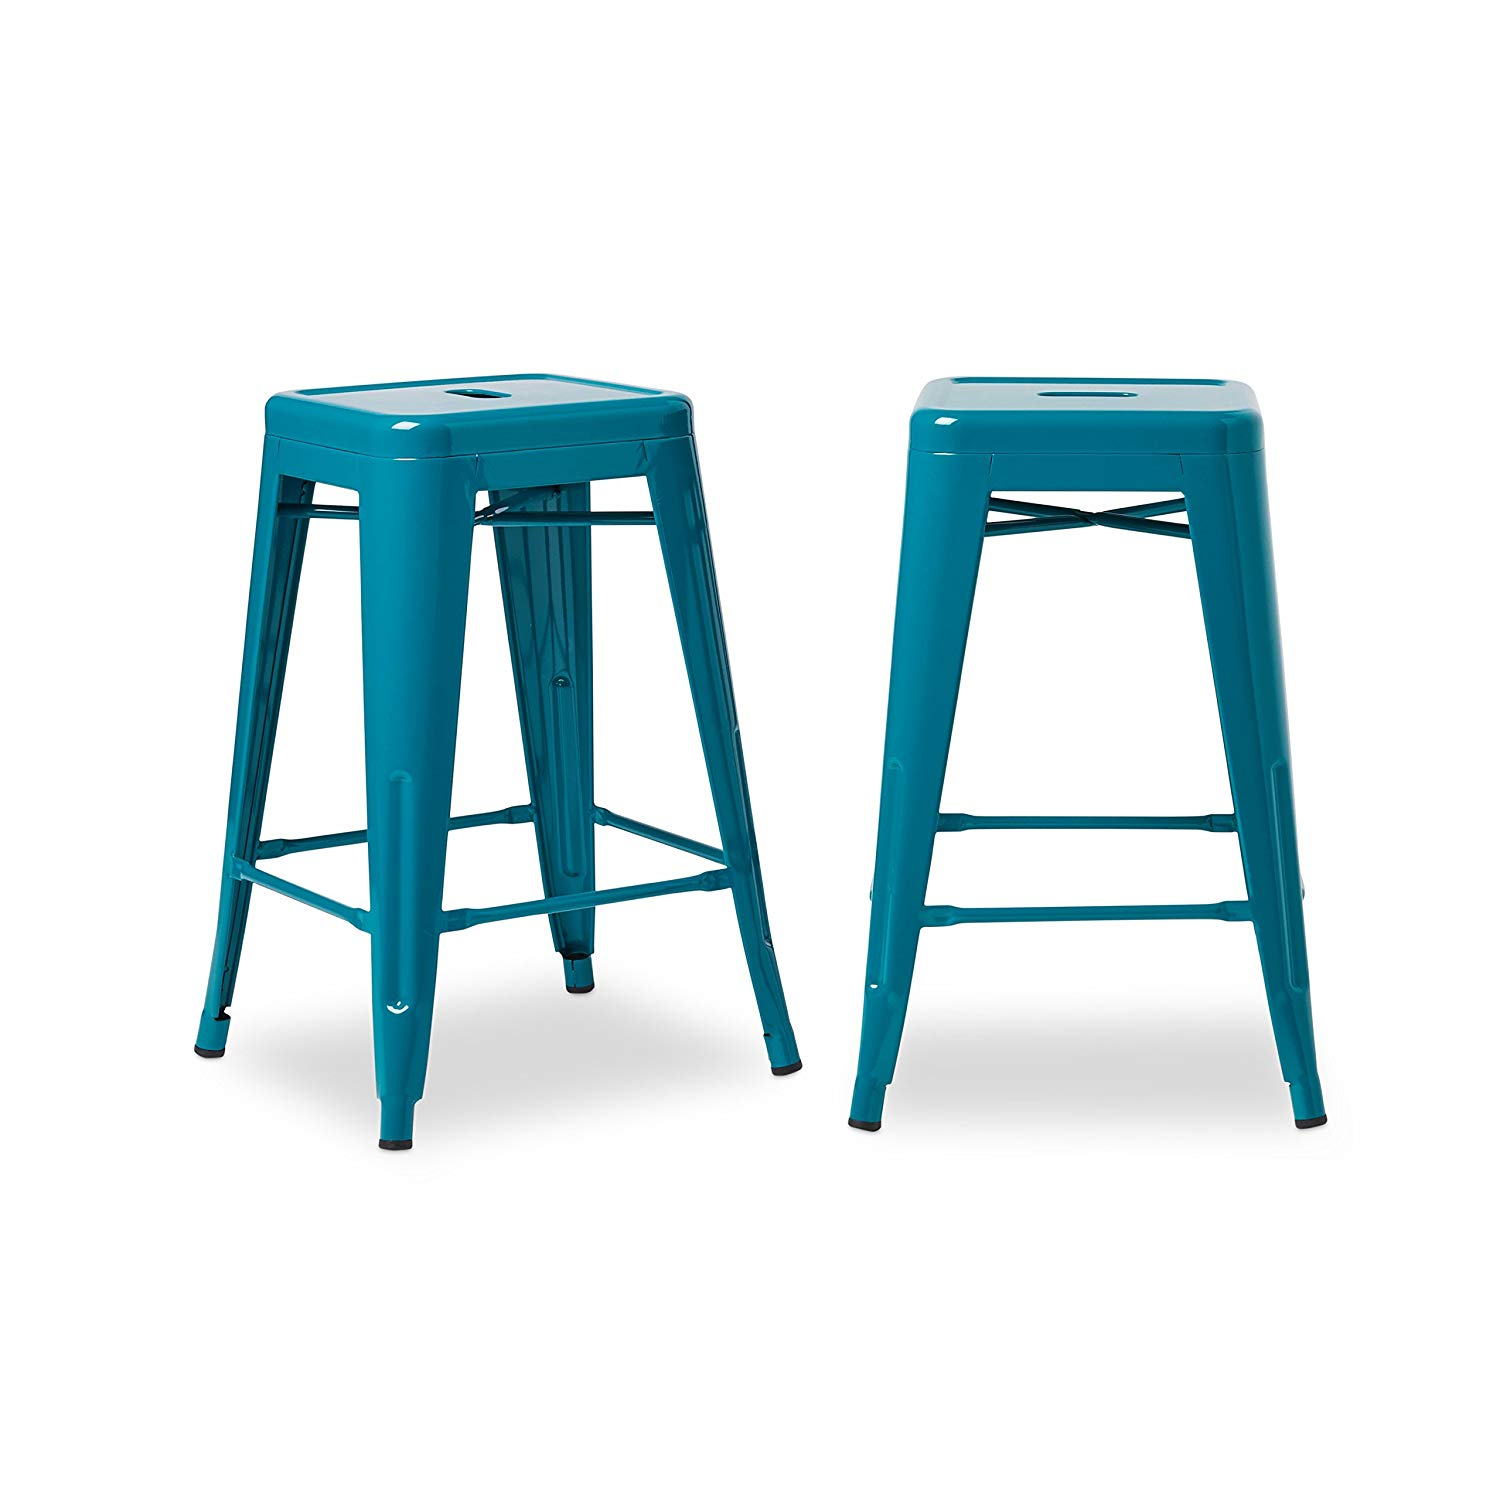 24 inch counter chairs blue wedding chair sashes cheap stools find deals on get quotations svitlife tabouret peacock set of 2 stool bar